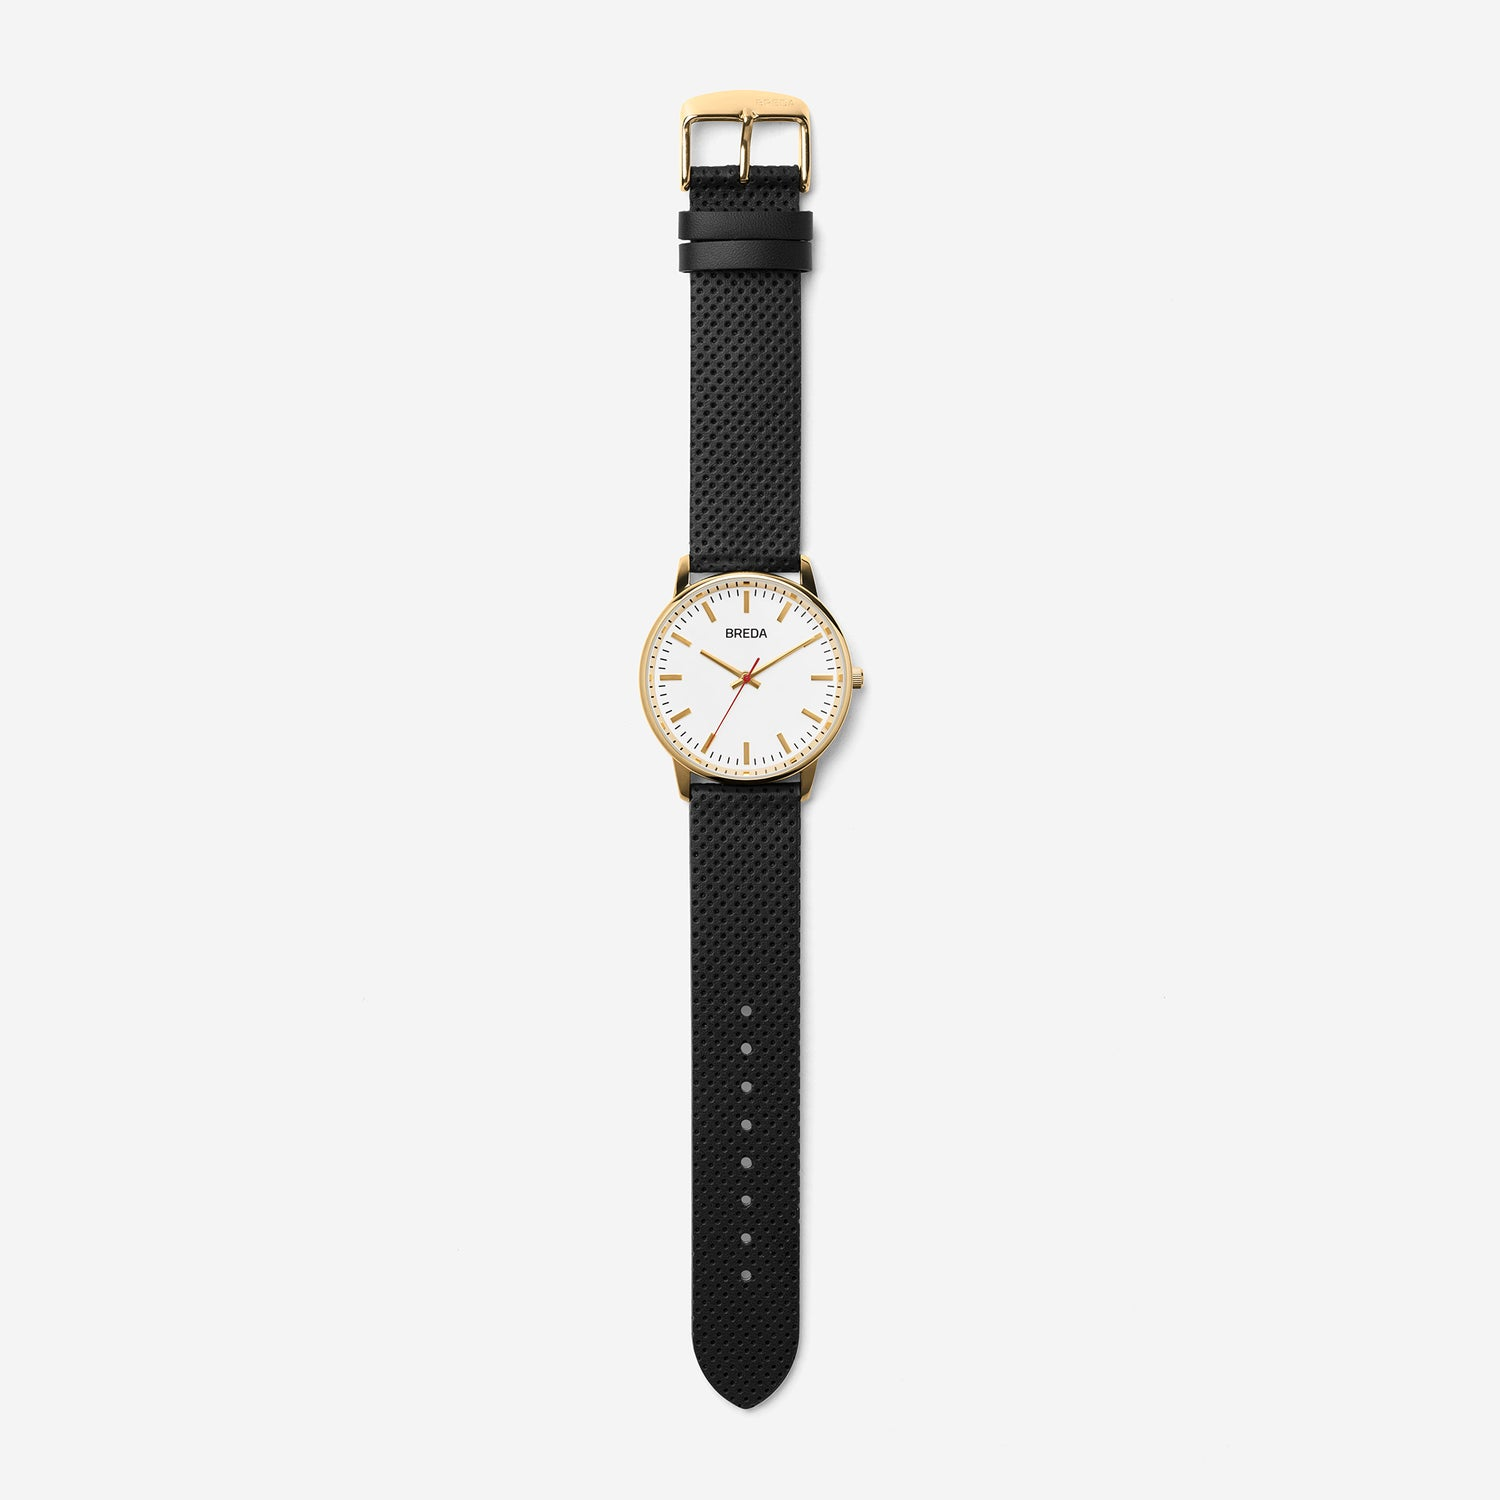 breda-zapf-1725a-gold-black-leather-watch-long